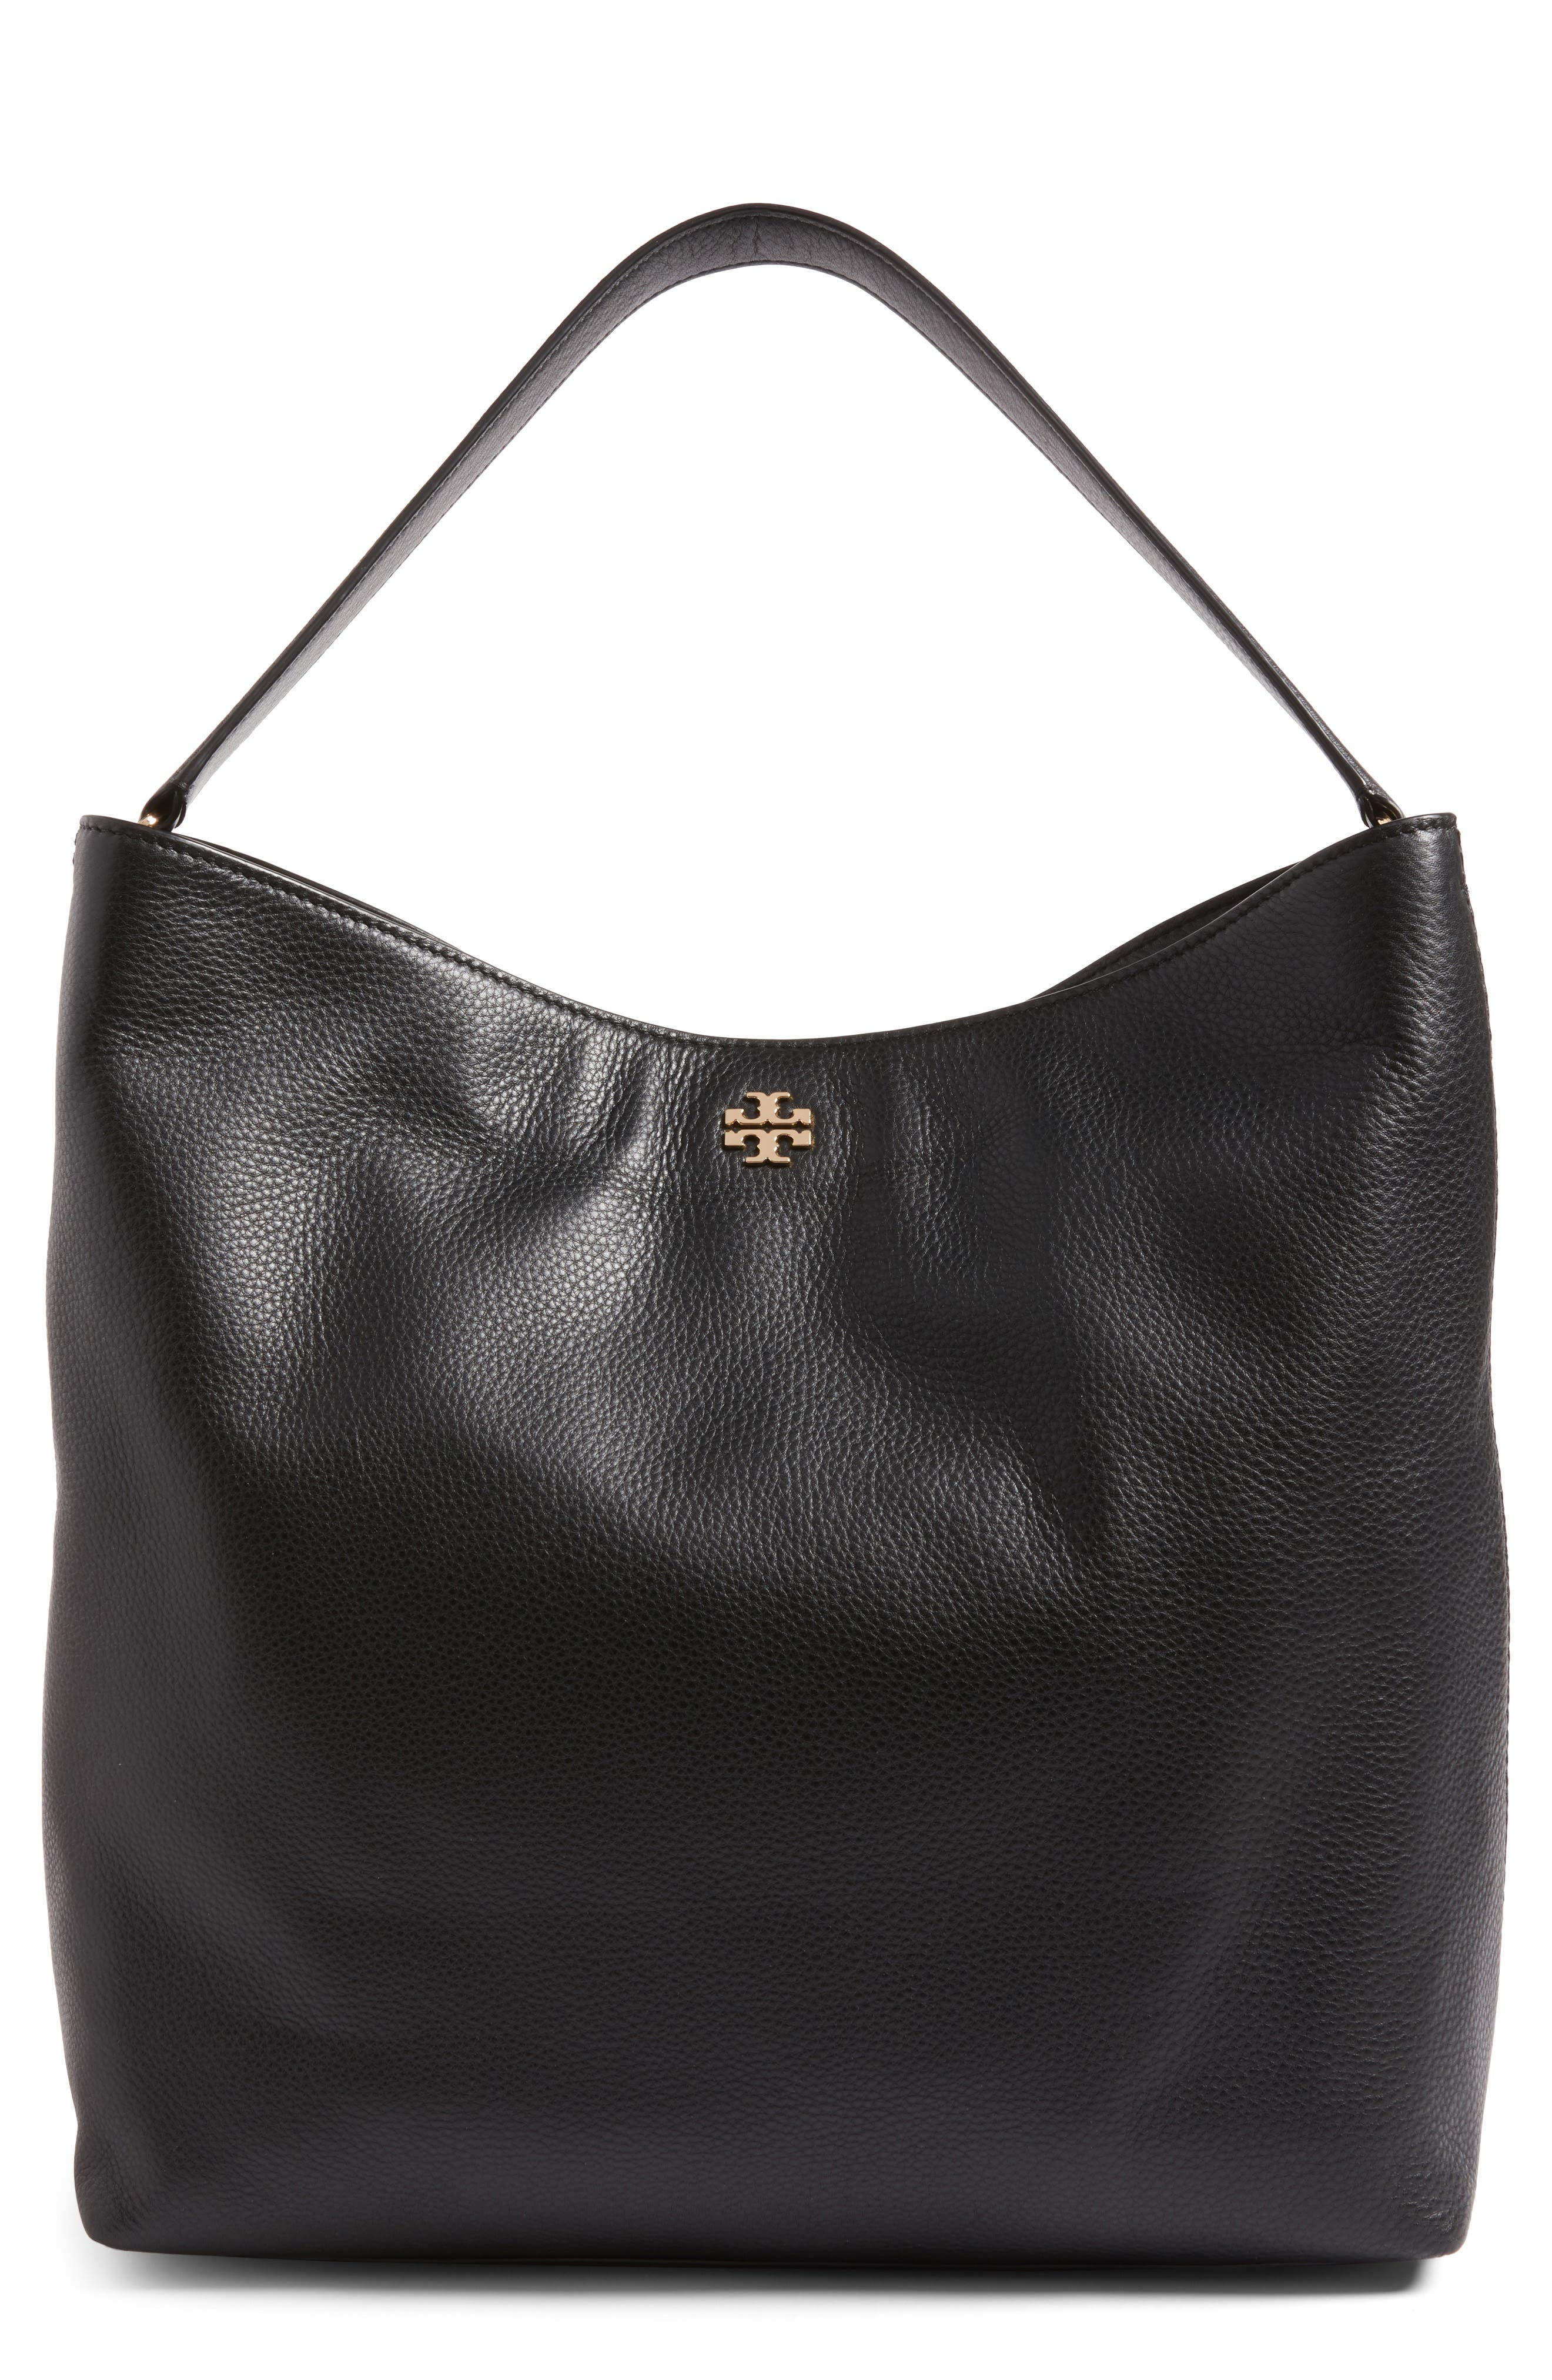 Tory Burch Frida Leather Hobo (Nordstrom Exclusive)